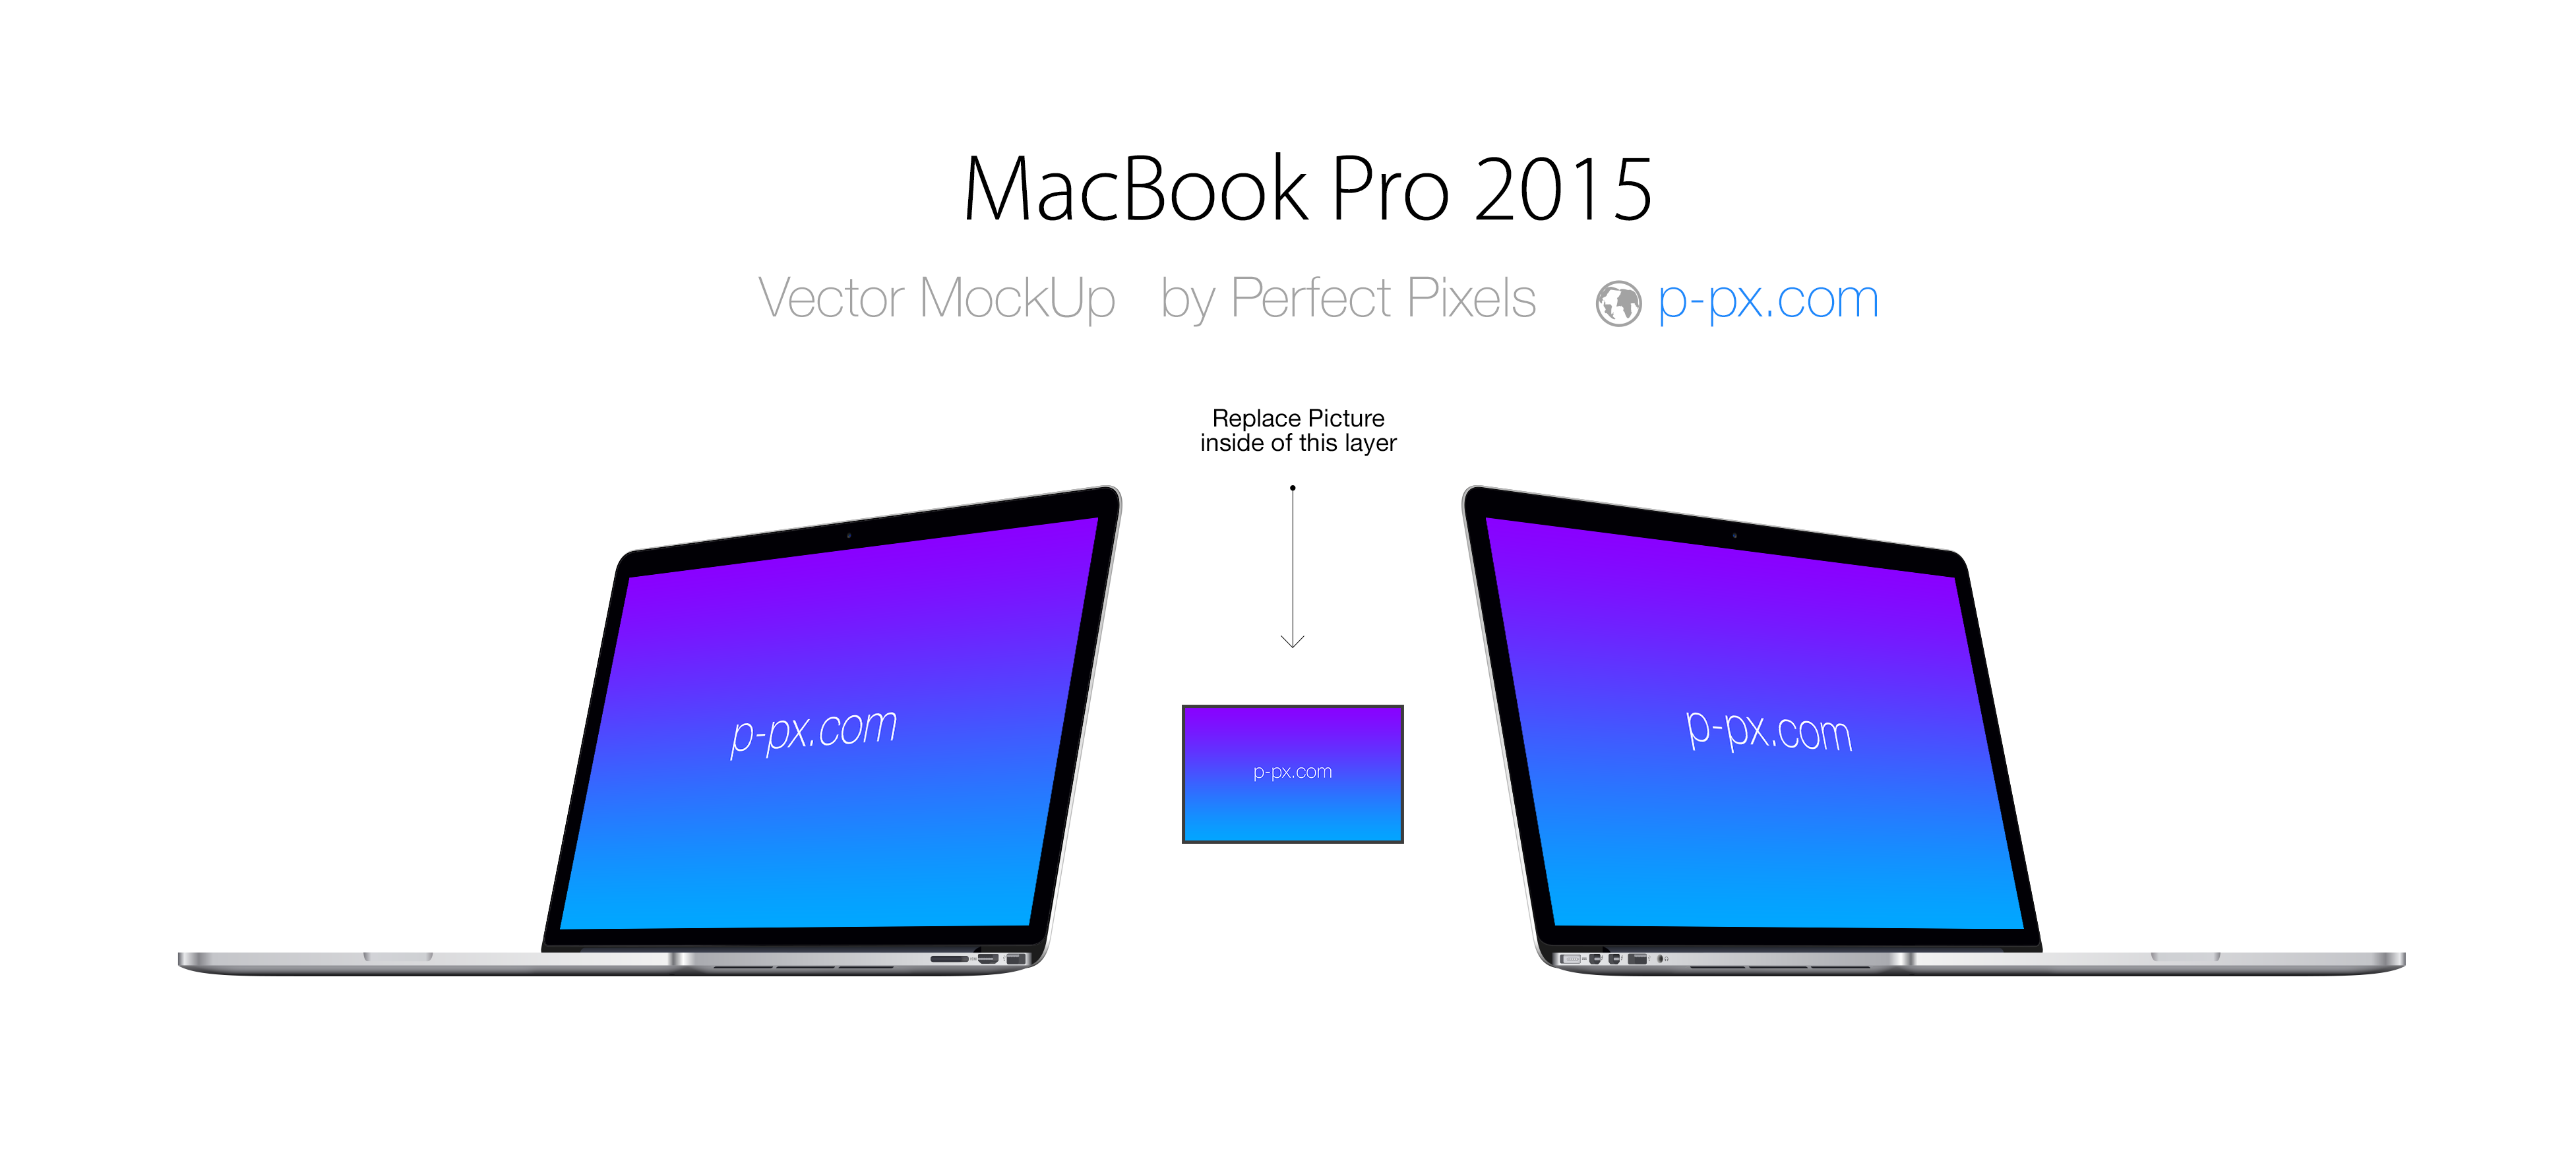 3906x1746 Macbook Pro 2015 Angled View Psd + Ai Vector Template. Perfect